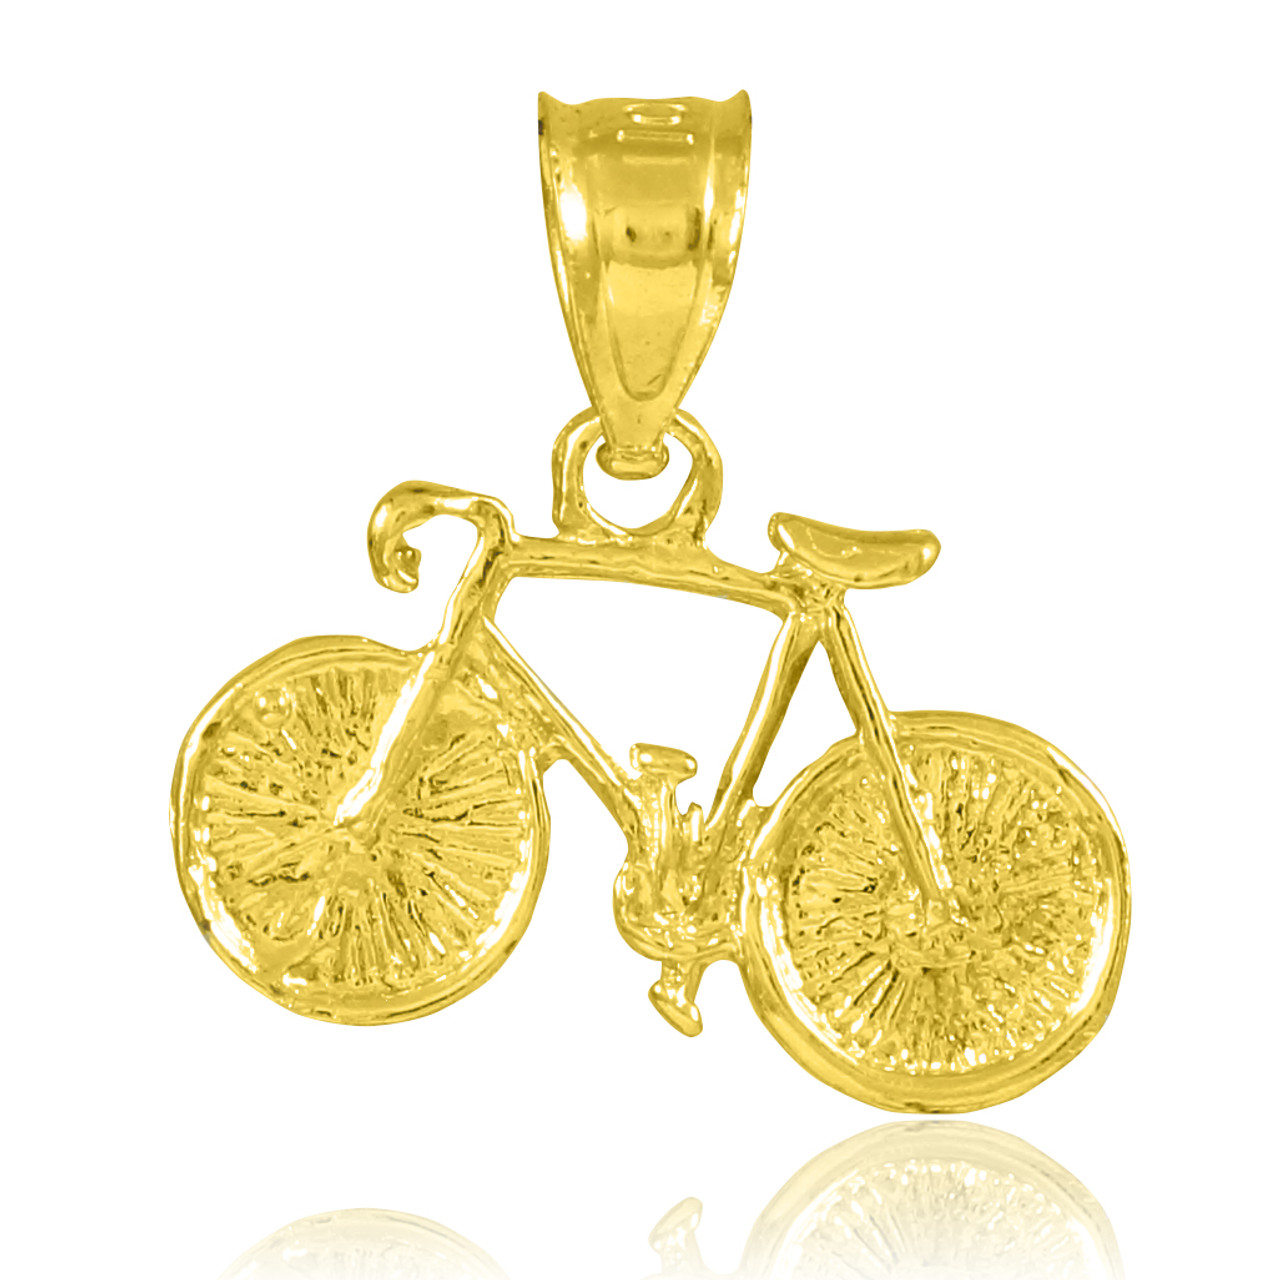 10k Yellow Gold Putter Golfer Sports Charm Pendant Necklace 22